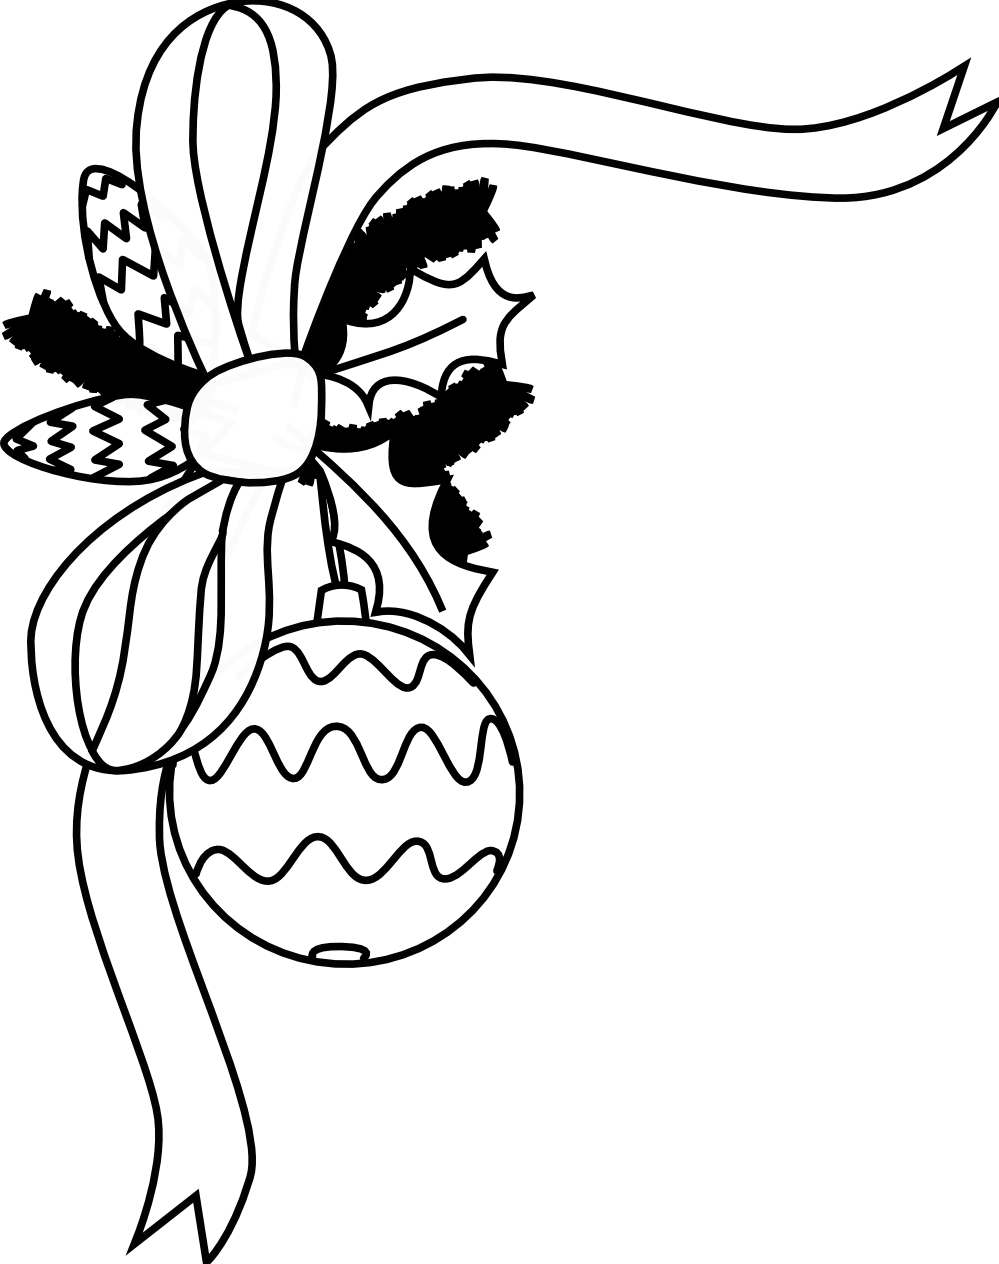 Christmas decorations images clipart - Ornament 20clipart 20black 20and 20white